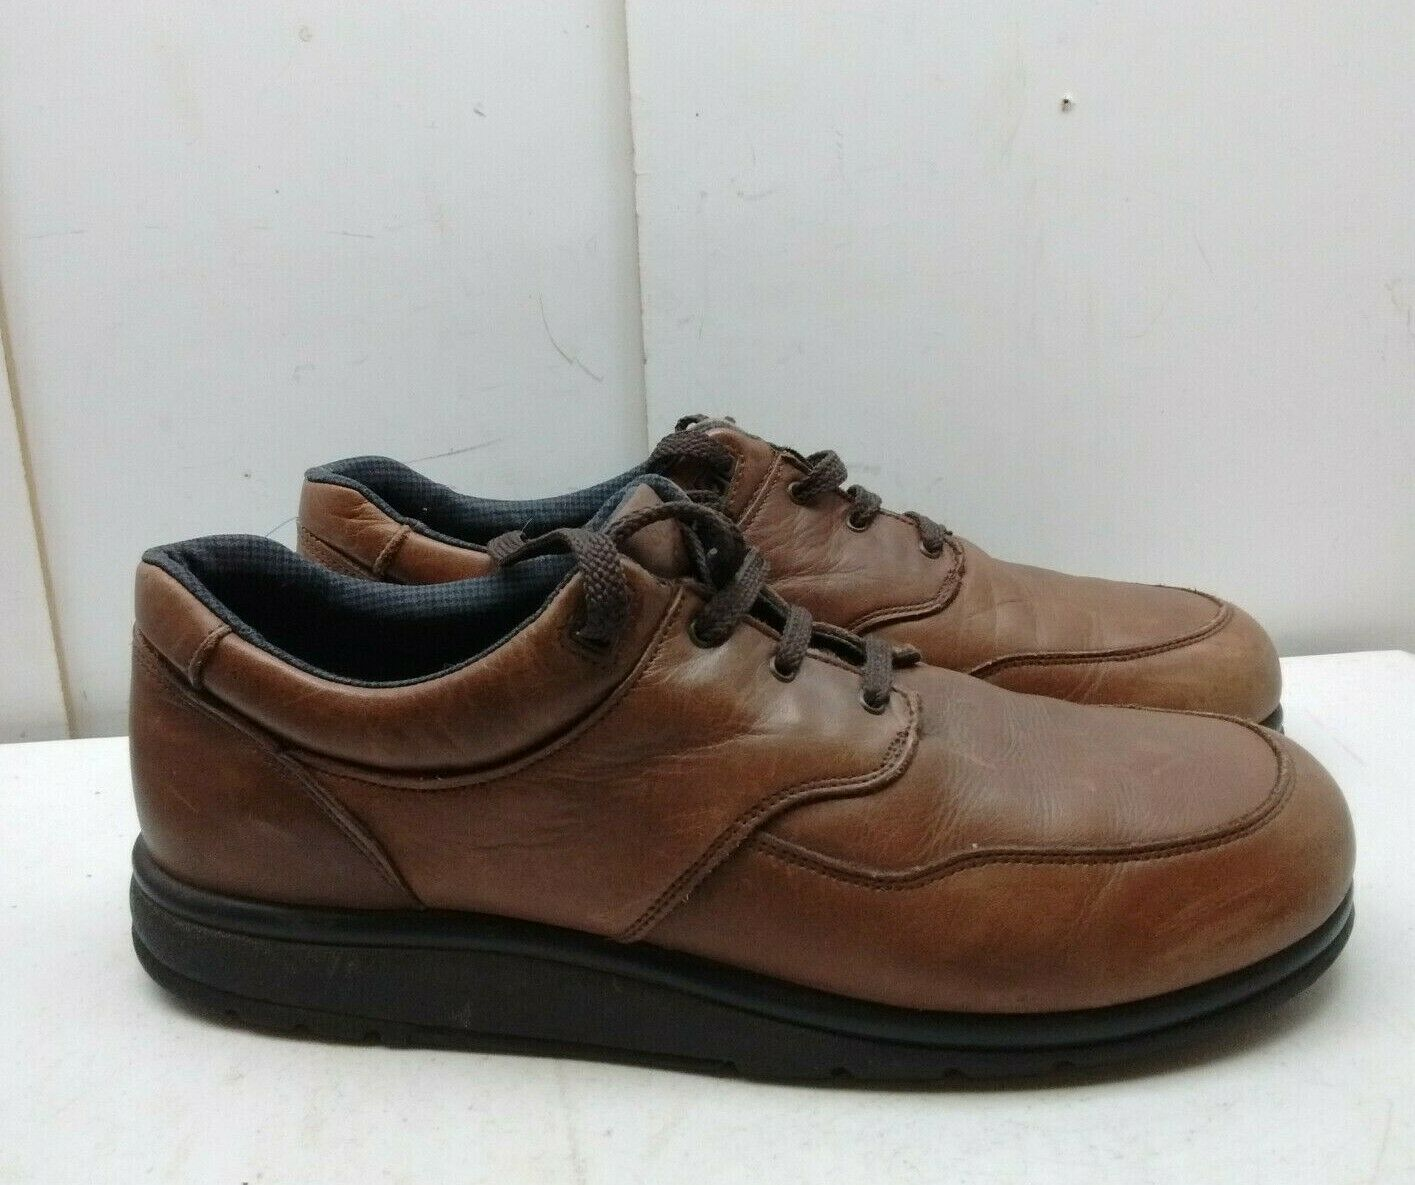 New Balance 900 American Classics Brown Leather Oxford Casual Men shoes 13B 47.5